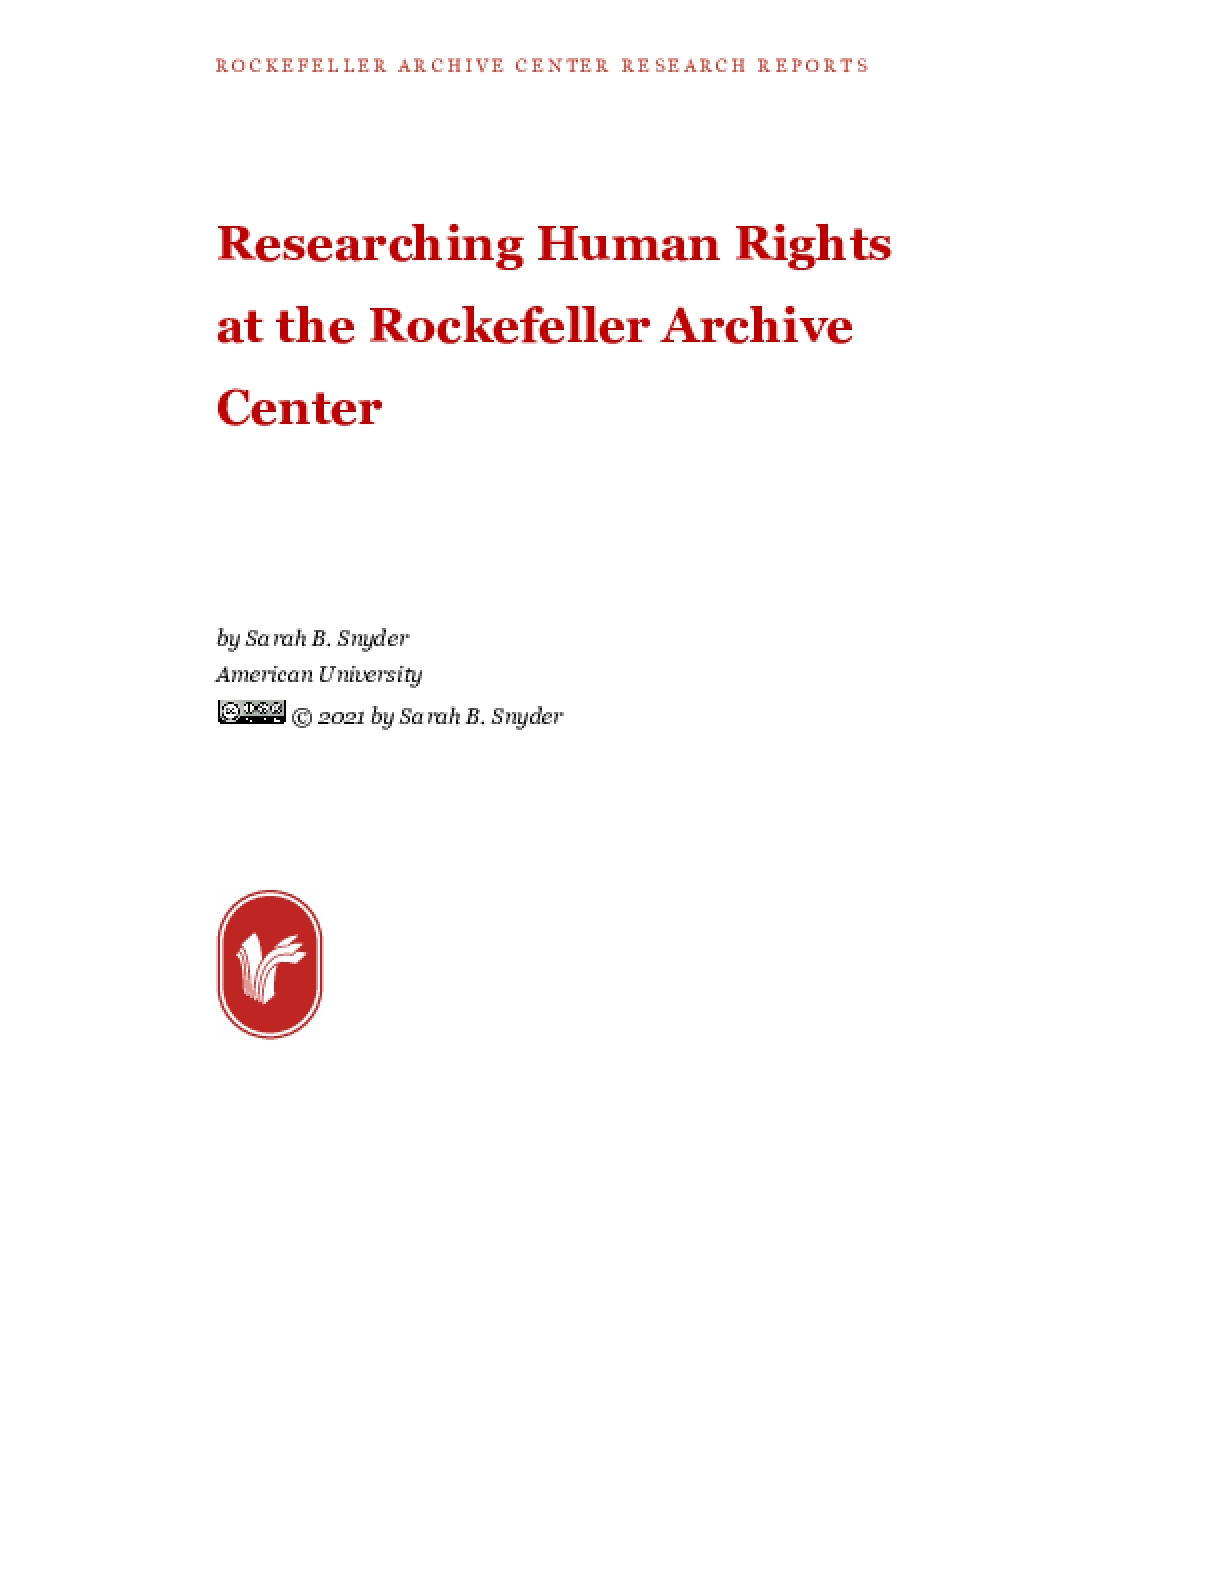 Researching Human Rights at the Rockefeller Archive Center